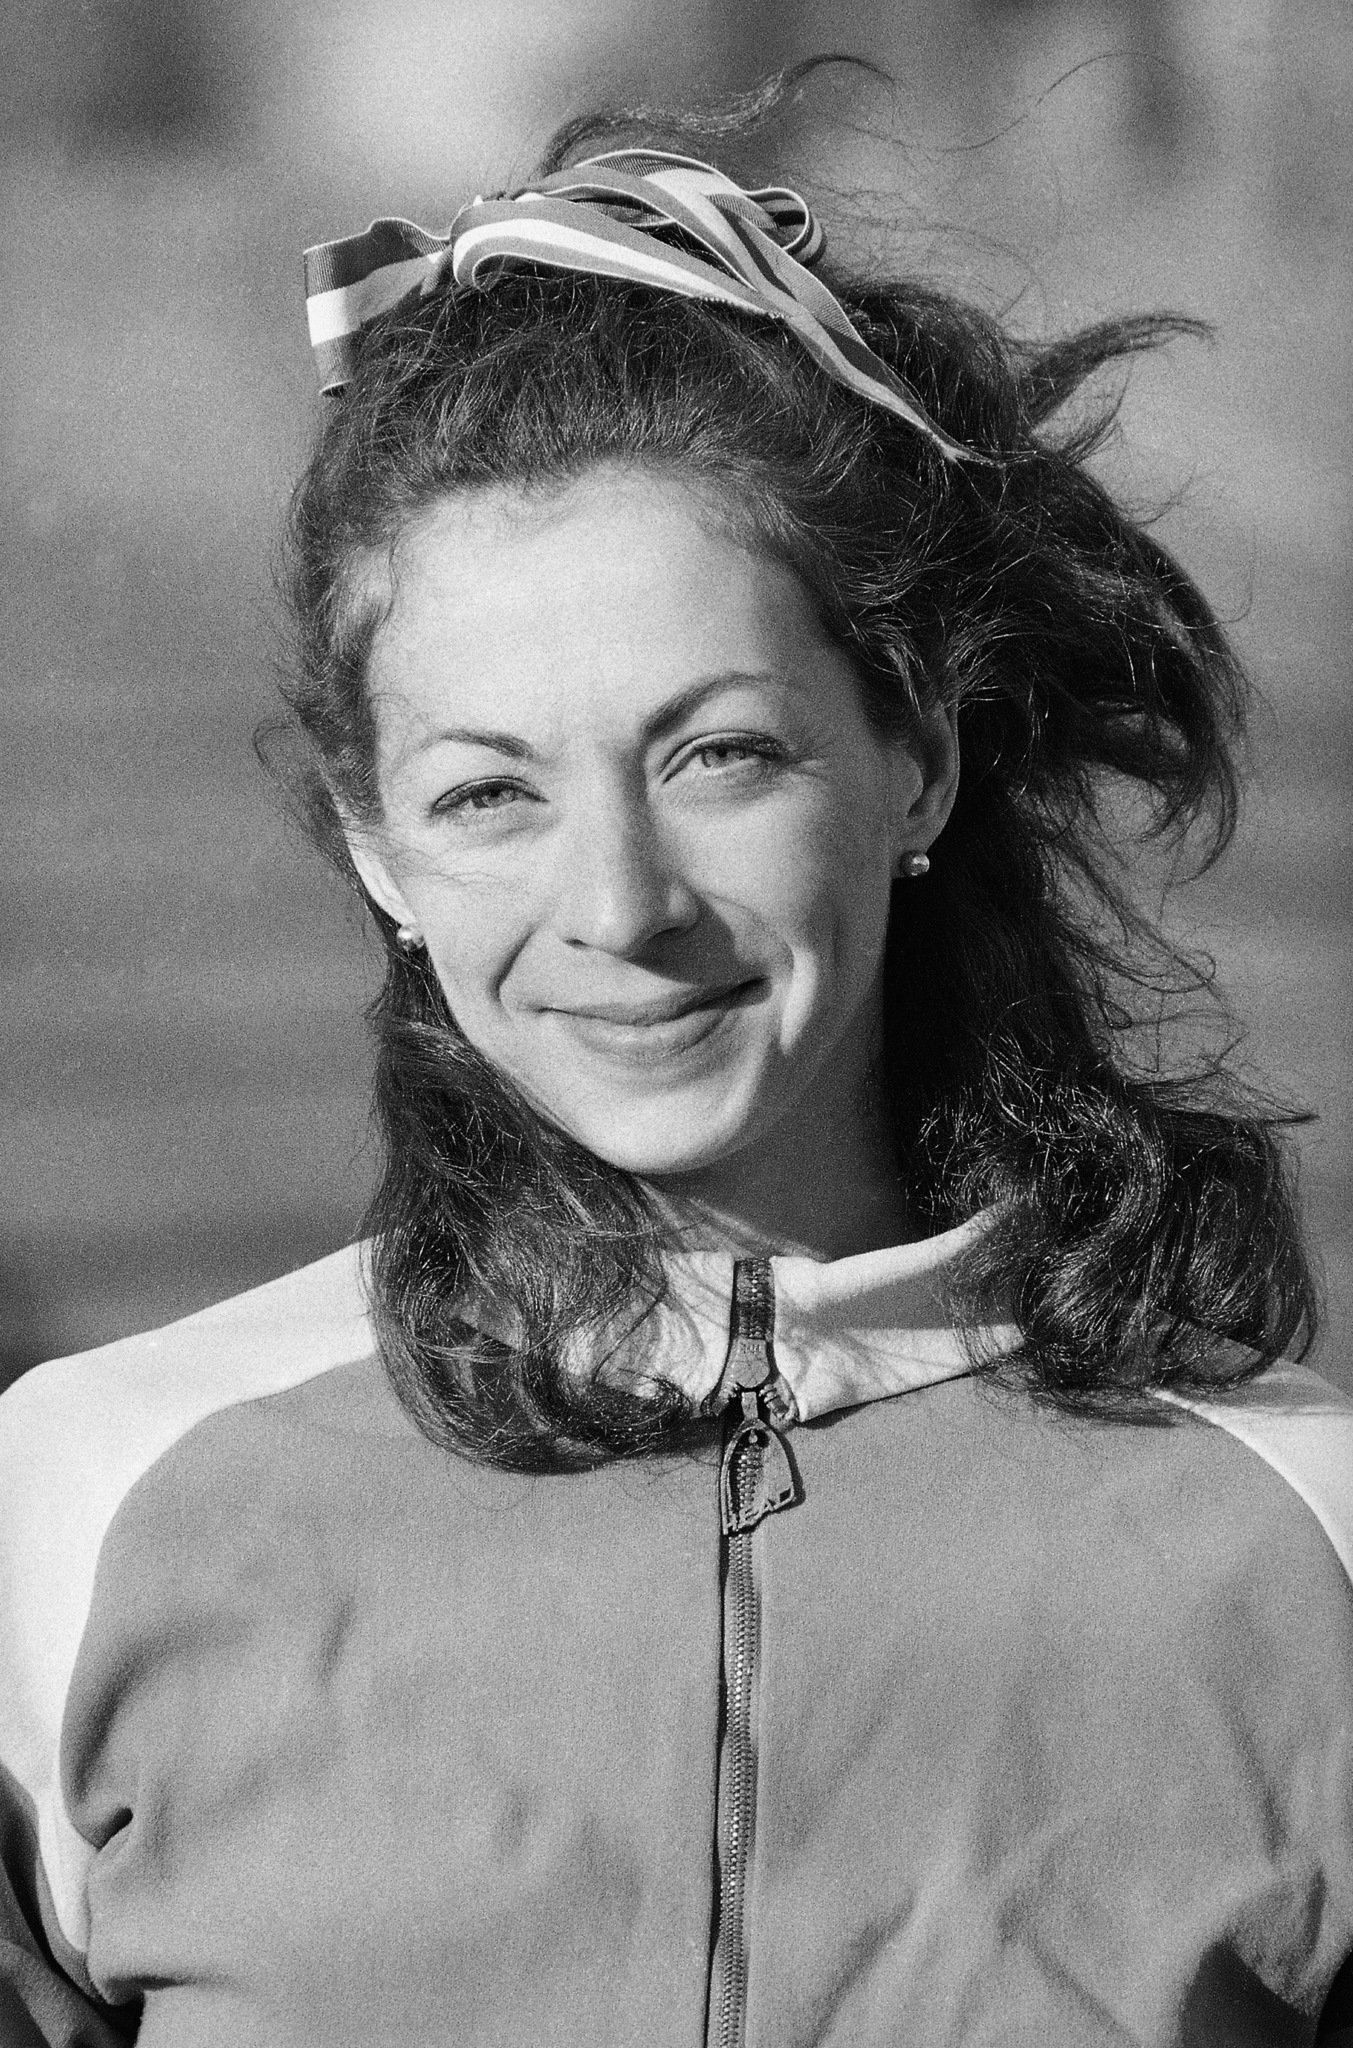 Kathrine-Switzer-marathon-woman-boston-sport-feamle-cult-stories cult stories cultstories cinema cult story kathrine switzer quotes kathrine switzer 1967 kathrine switzer book kathrine switzer photo kathrine switzer boston marathon youtube kathrine switzer poster kathrine switzer pictures kathrine switzer twitter kathrine switzer and tom miller kathrine switzer facebook kathrine switzer tom miller kathrine switzer biography kathrine switzer boston kathrine switzer amazon kathrine switzer avon kathrine switzer accomplishments kathrine switzer age kathrine switzer and runner's world entrevista a kathrine switzer kathrine switzer bbc kathrine switzer bobbi gibb kathrine switzer blog kathrine switzer boston bombing kathrine switzer biografia kathrine switzer contact kathrine switzer com kathrine switzer documentary kathrine switzer diet kathrine switzer espn kathrine switzer email kathrine switzer early life kathrine switzer wikipedia español marathon woman kathrine switzer ebook kathrine switzer family kathrine switzer fitness walking program kathrine switzer facts kathrine switzer father kathrine switzer frases kathrine switzer grande prairie kathrine switzer husband kathrine switzer historia kathrine switzer interview kathrine switzer images kathrine switzer ita kathrine switzer jock semple kathrine switzer kim katherine virginia kathy switzer kathrine switzer life kathrine switzer lunch kathrine switzer personal life where does kathrine switzer live kathrine switzer libro kathrine switzer laufen kathrine switzer movie kathrine switzer marathon kathrine switzer marathon runner kathrine switzer makers kathrine switzer marathon quote kathrine switzer marriage marathon woman kathrine switzer kathrine switzer melbourne kathrine switzer tom miller married kathrine switzer new zealand kathrine switzer npr kathrine switzer new paltz kathrine switzer nz kathrine switzer on oprah kathrine switzer olympics kathrine switzer pbs kathryn poe-switzer kathryn poe switzer sec kathrine switzer running quotes kathrine switzer runner kathrine switzer roger robinson kathrine switzer runner's world kathrine switzer radio 4 kathrine switzer story kathrine switzer syracuse kathrine switzer syracuse university kathrine switzer toronto star kathrine switzer timeline kathrine switzer today kathrine switzer youtube kathrine switzer video katherine v switzer kathrine switzer wikipedia kathrine switzer wiki kathrine switzer website cultstory art culture music ipse dixit aneddoti citazioni frasi famose aforismi immagini foto personaggi cultura musica storie facts fatti celebrità vip cult